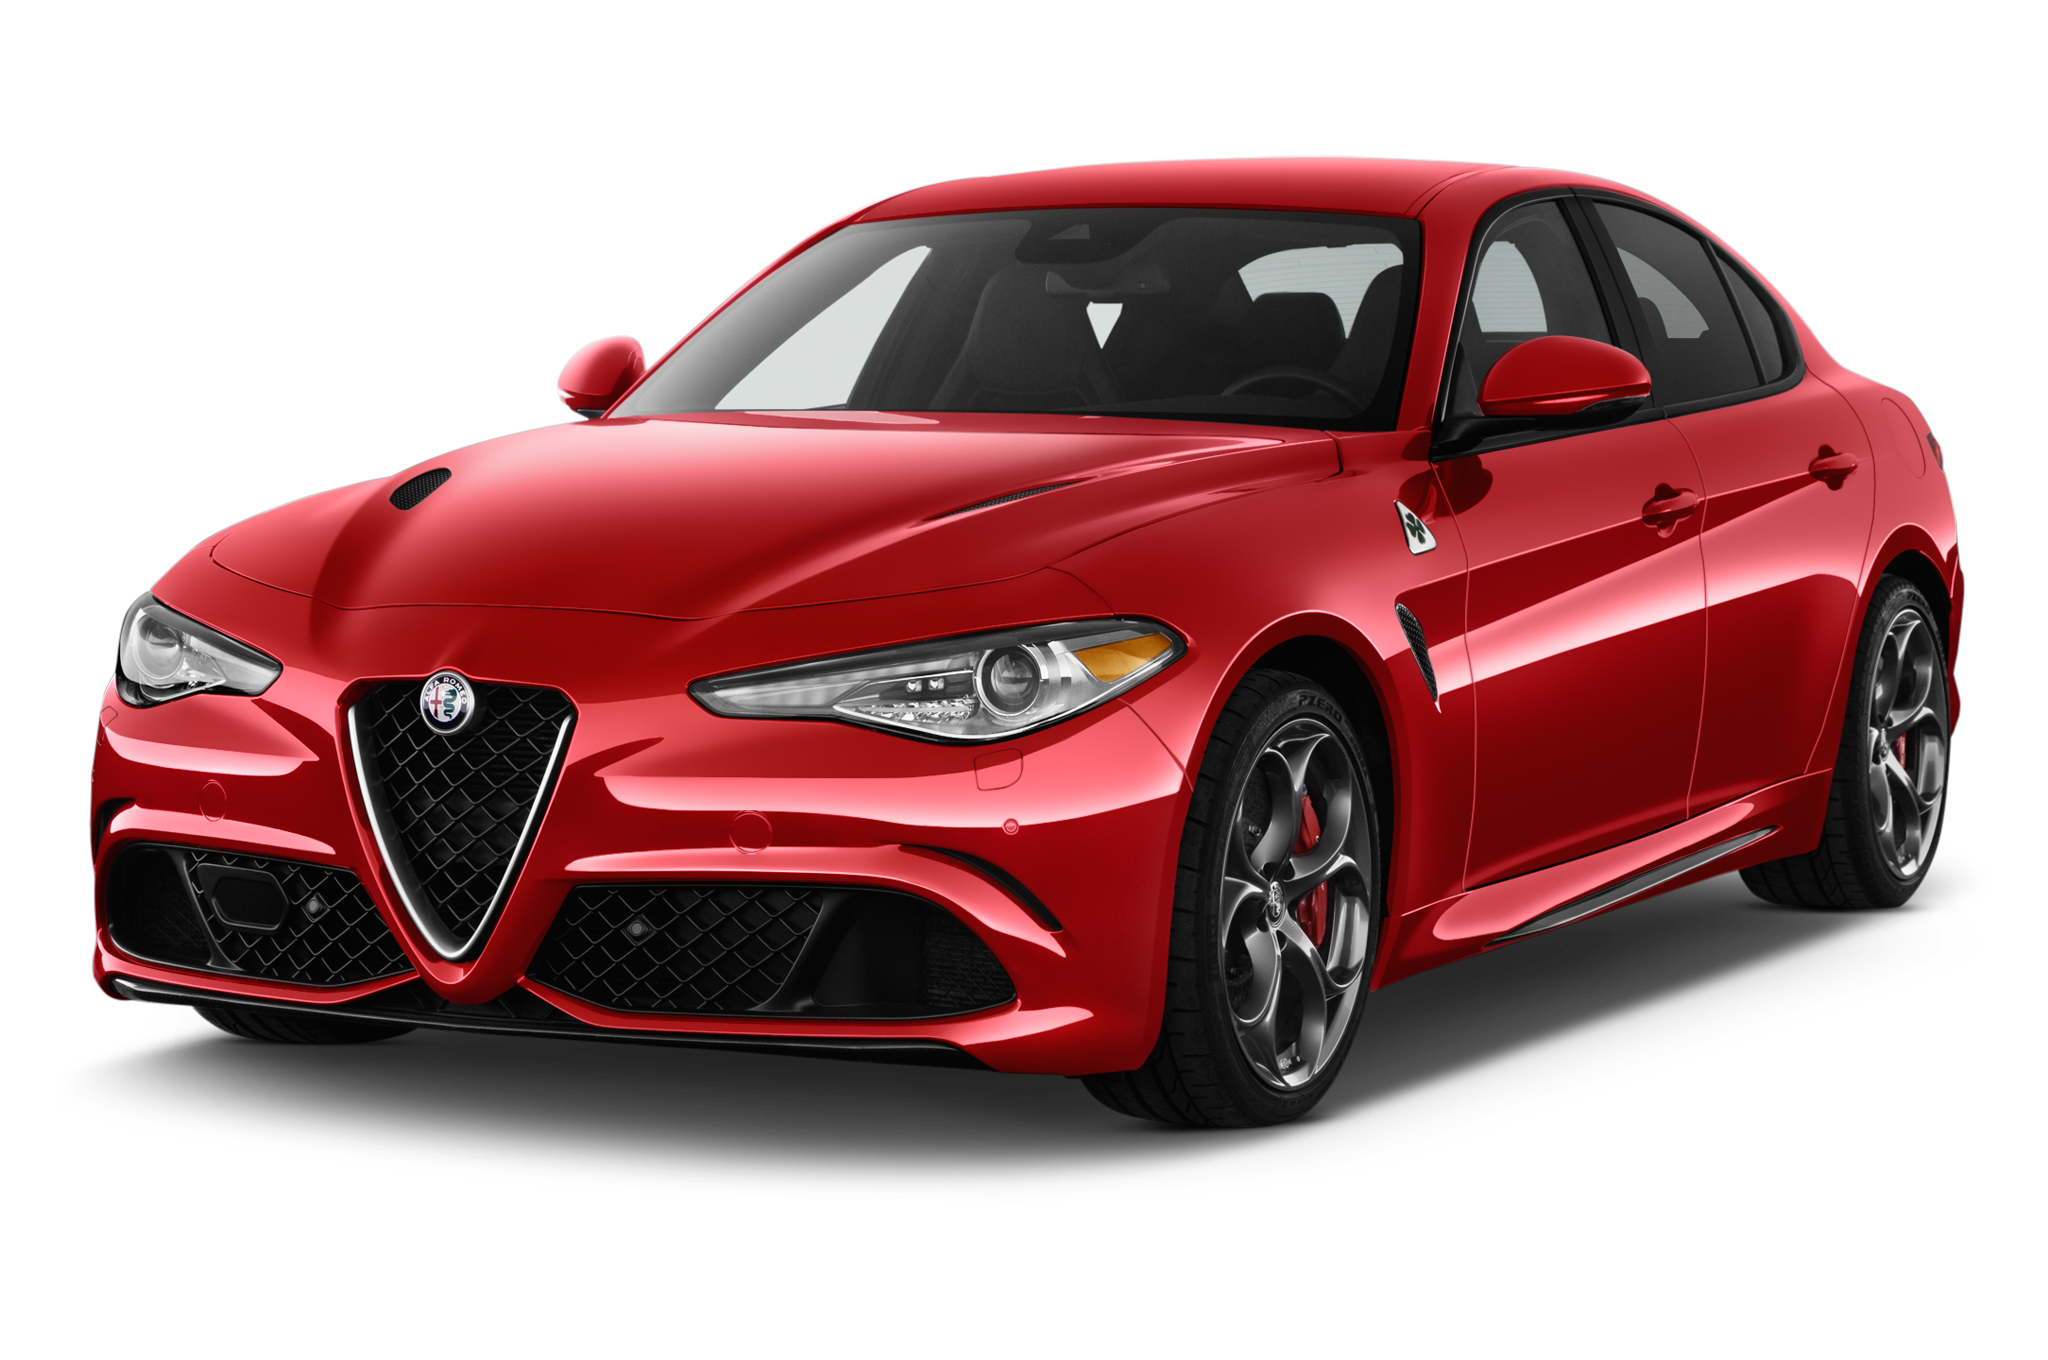 2018 alfa romeo giulia reviews and rating | motortrend